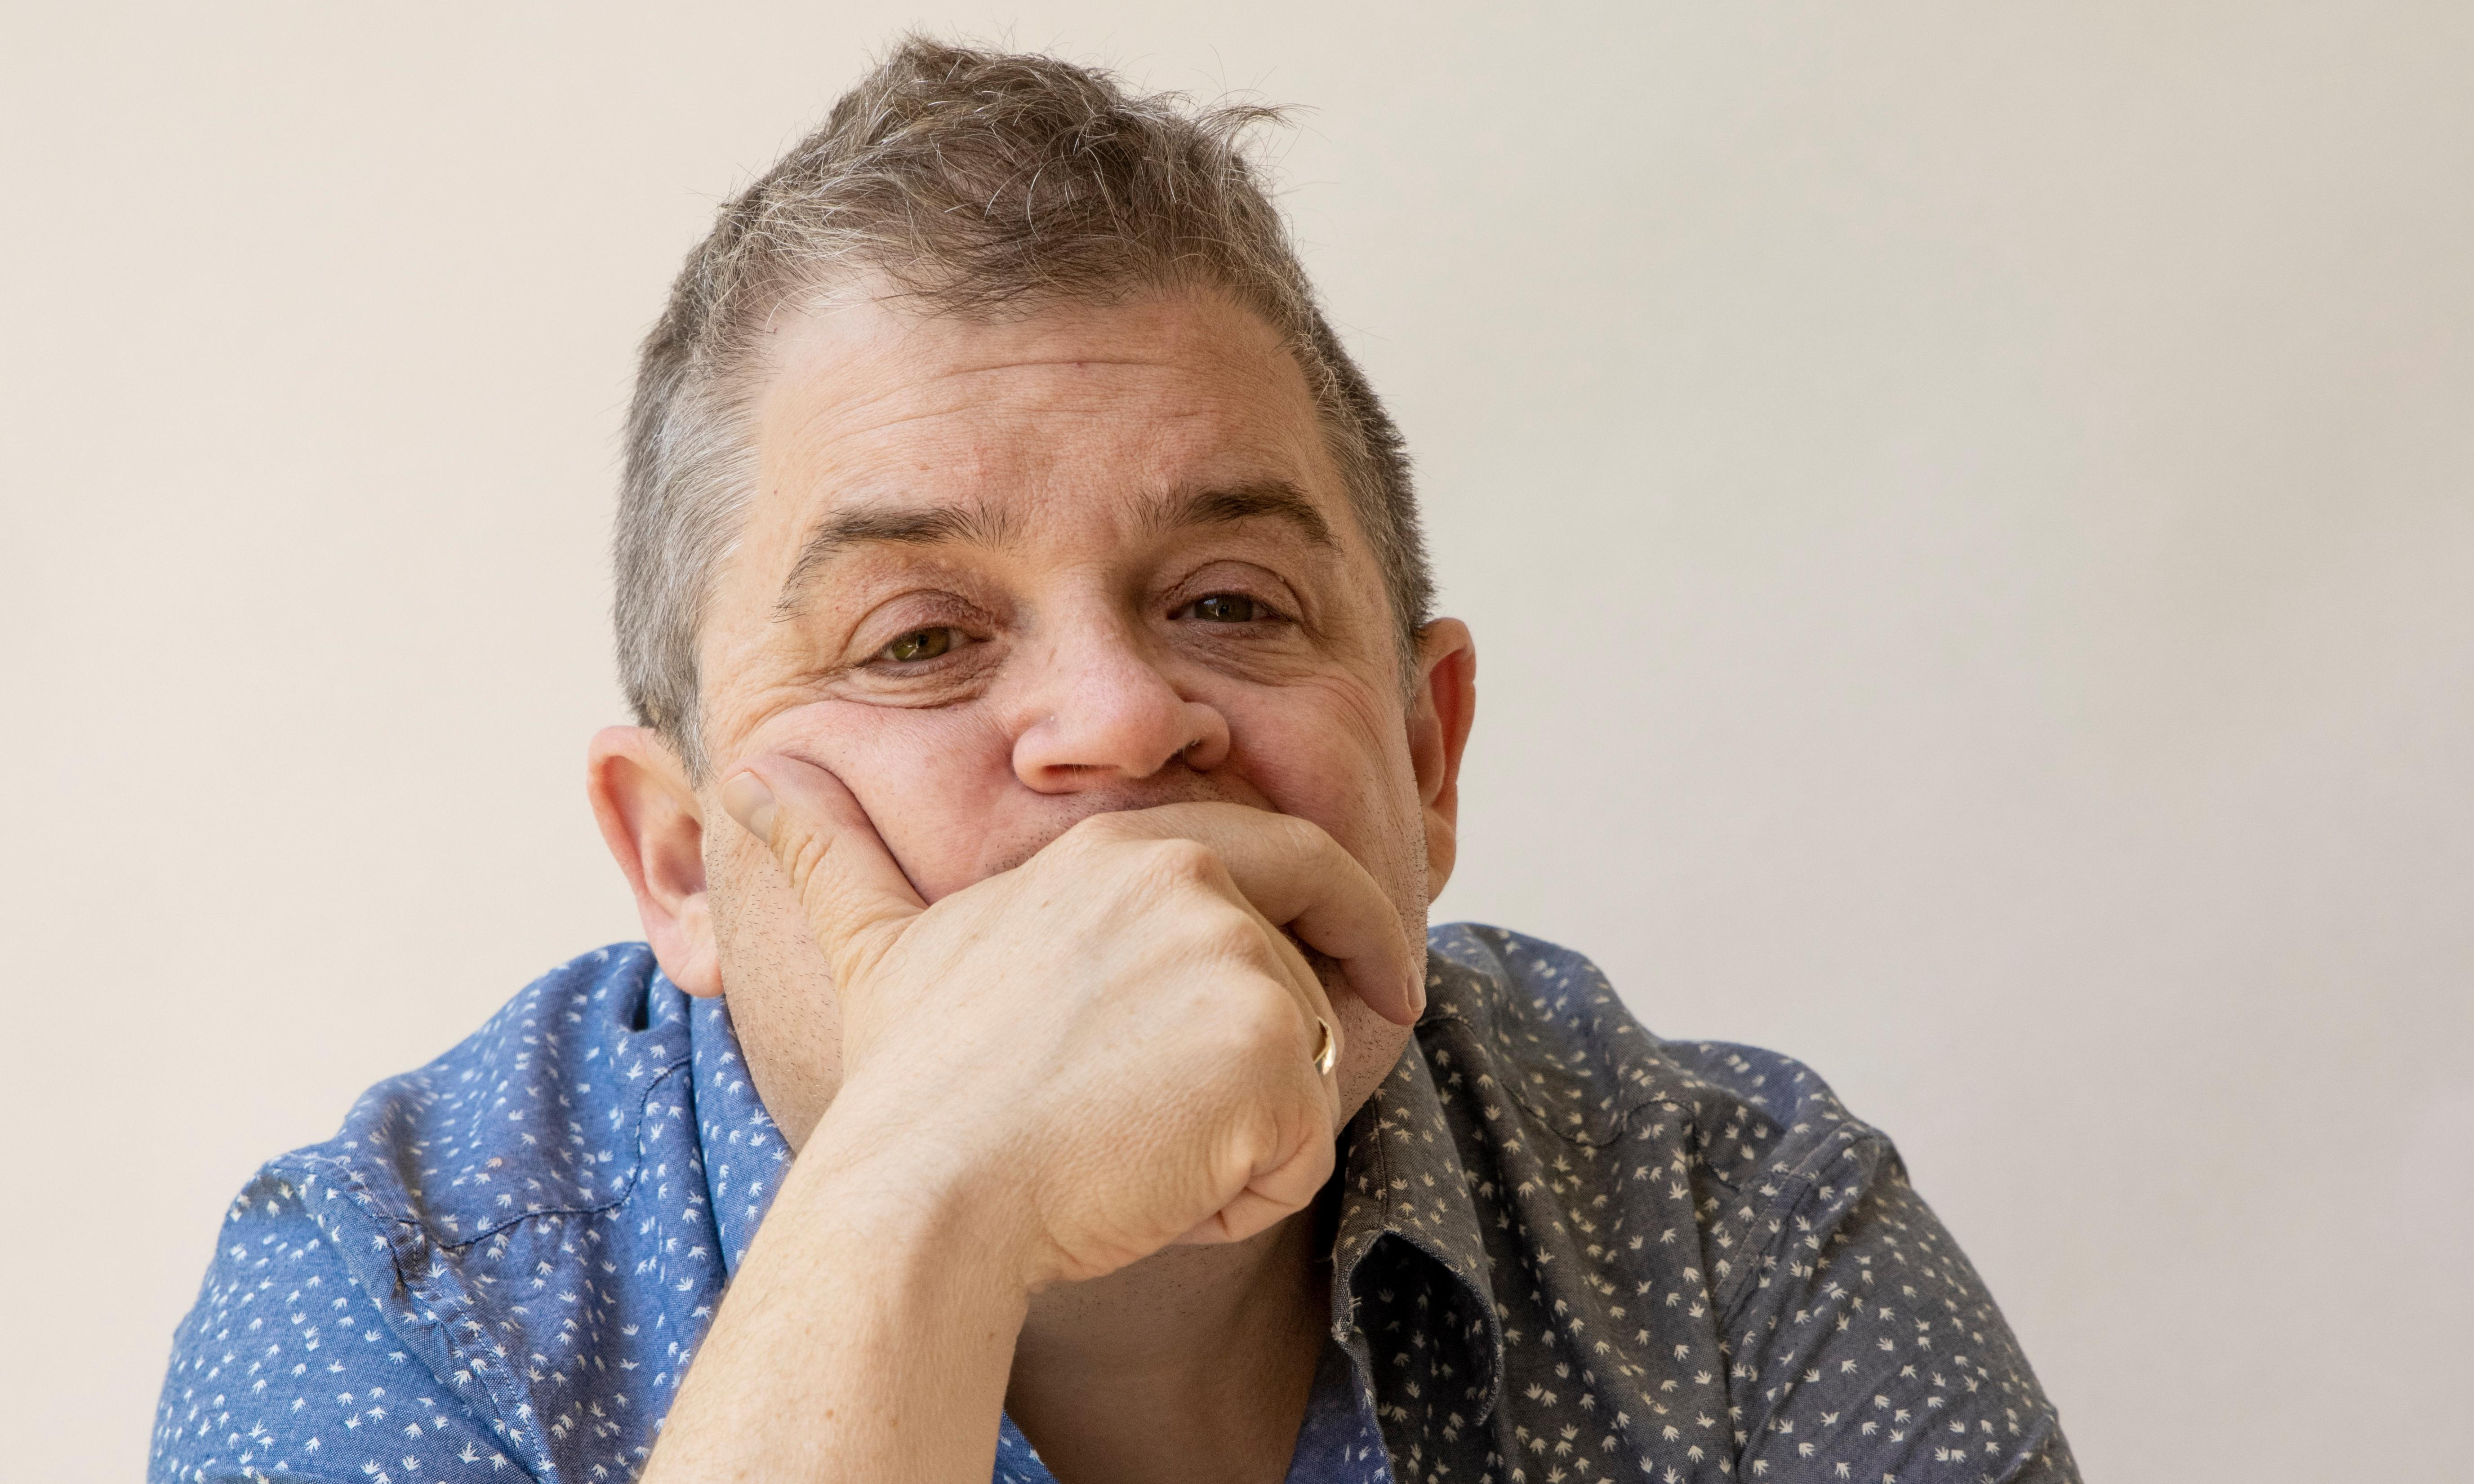 'Without my daughter, drinking would have been a problem': Patton Oswalt on bereavement